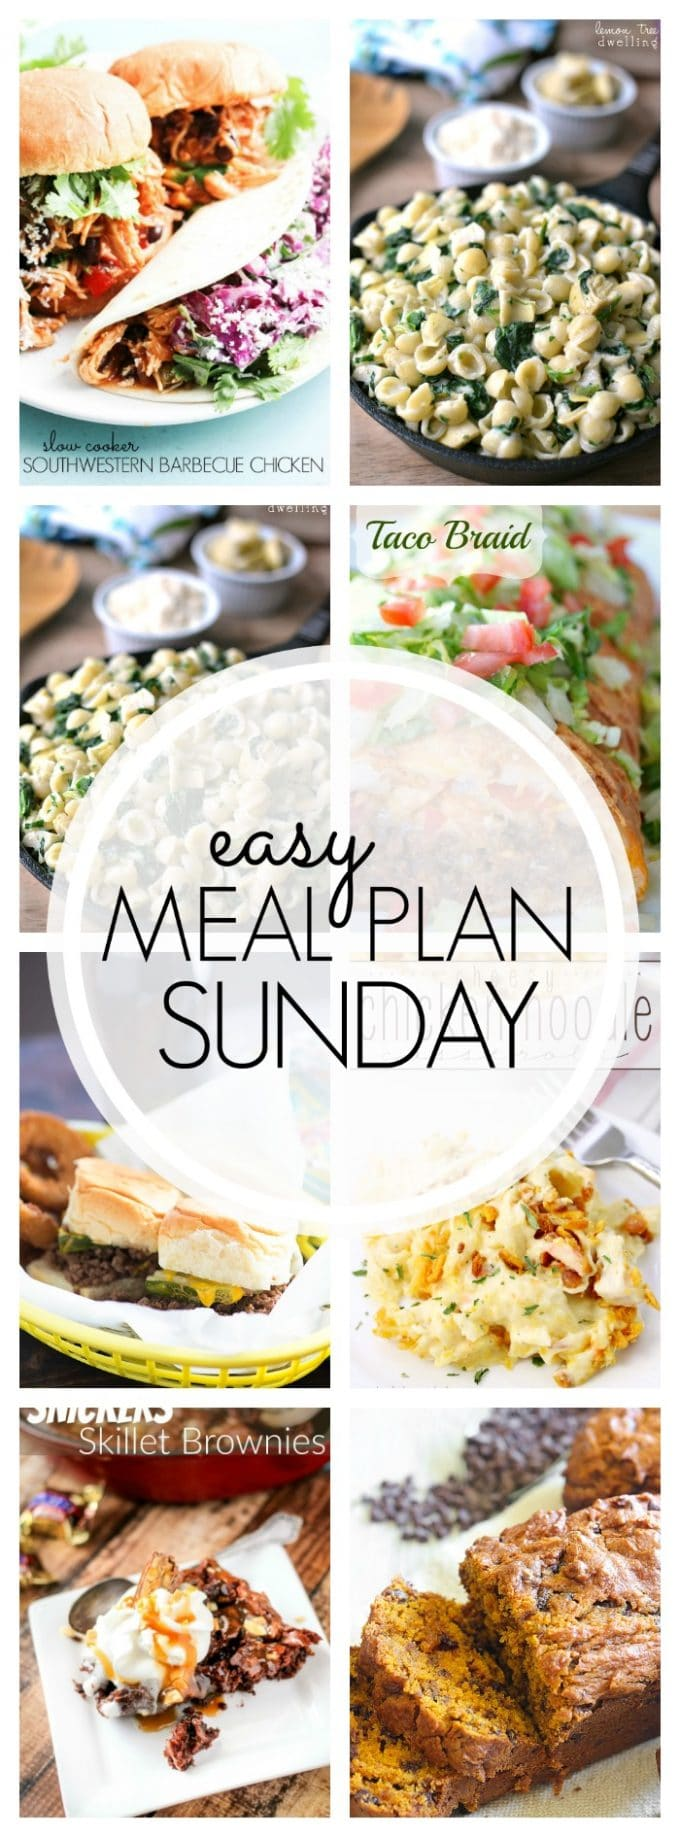 Easy Meal Plan Sunday Week 65